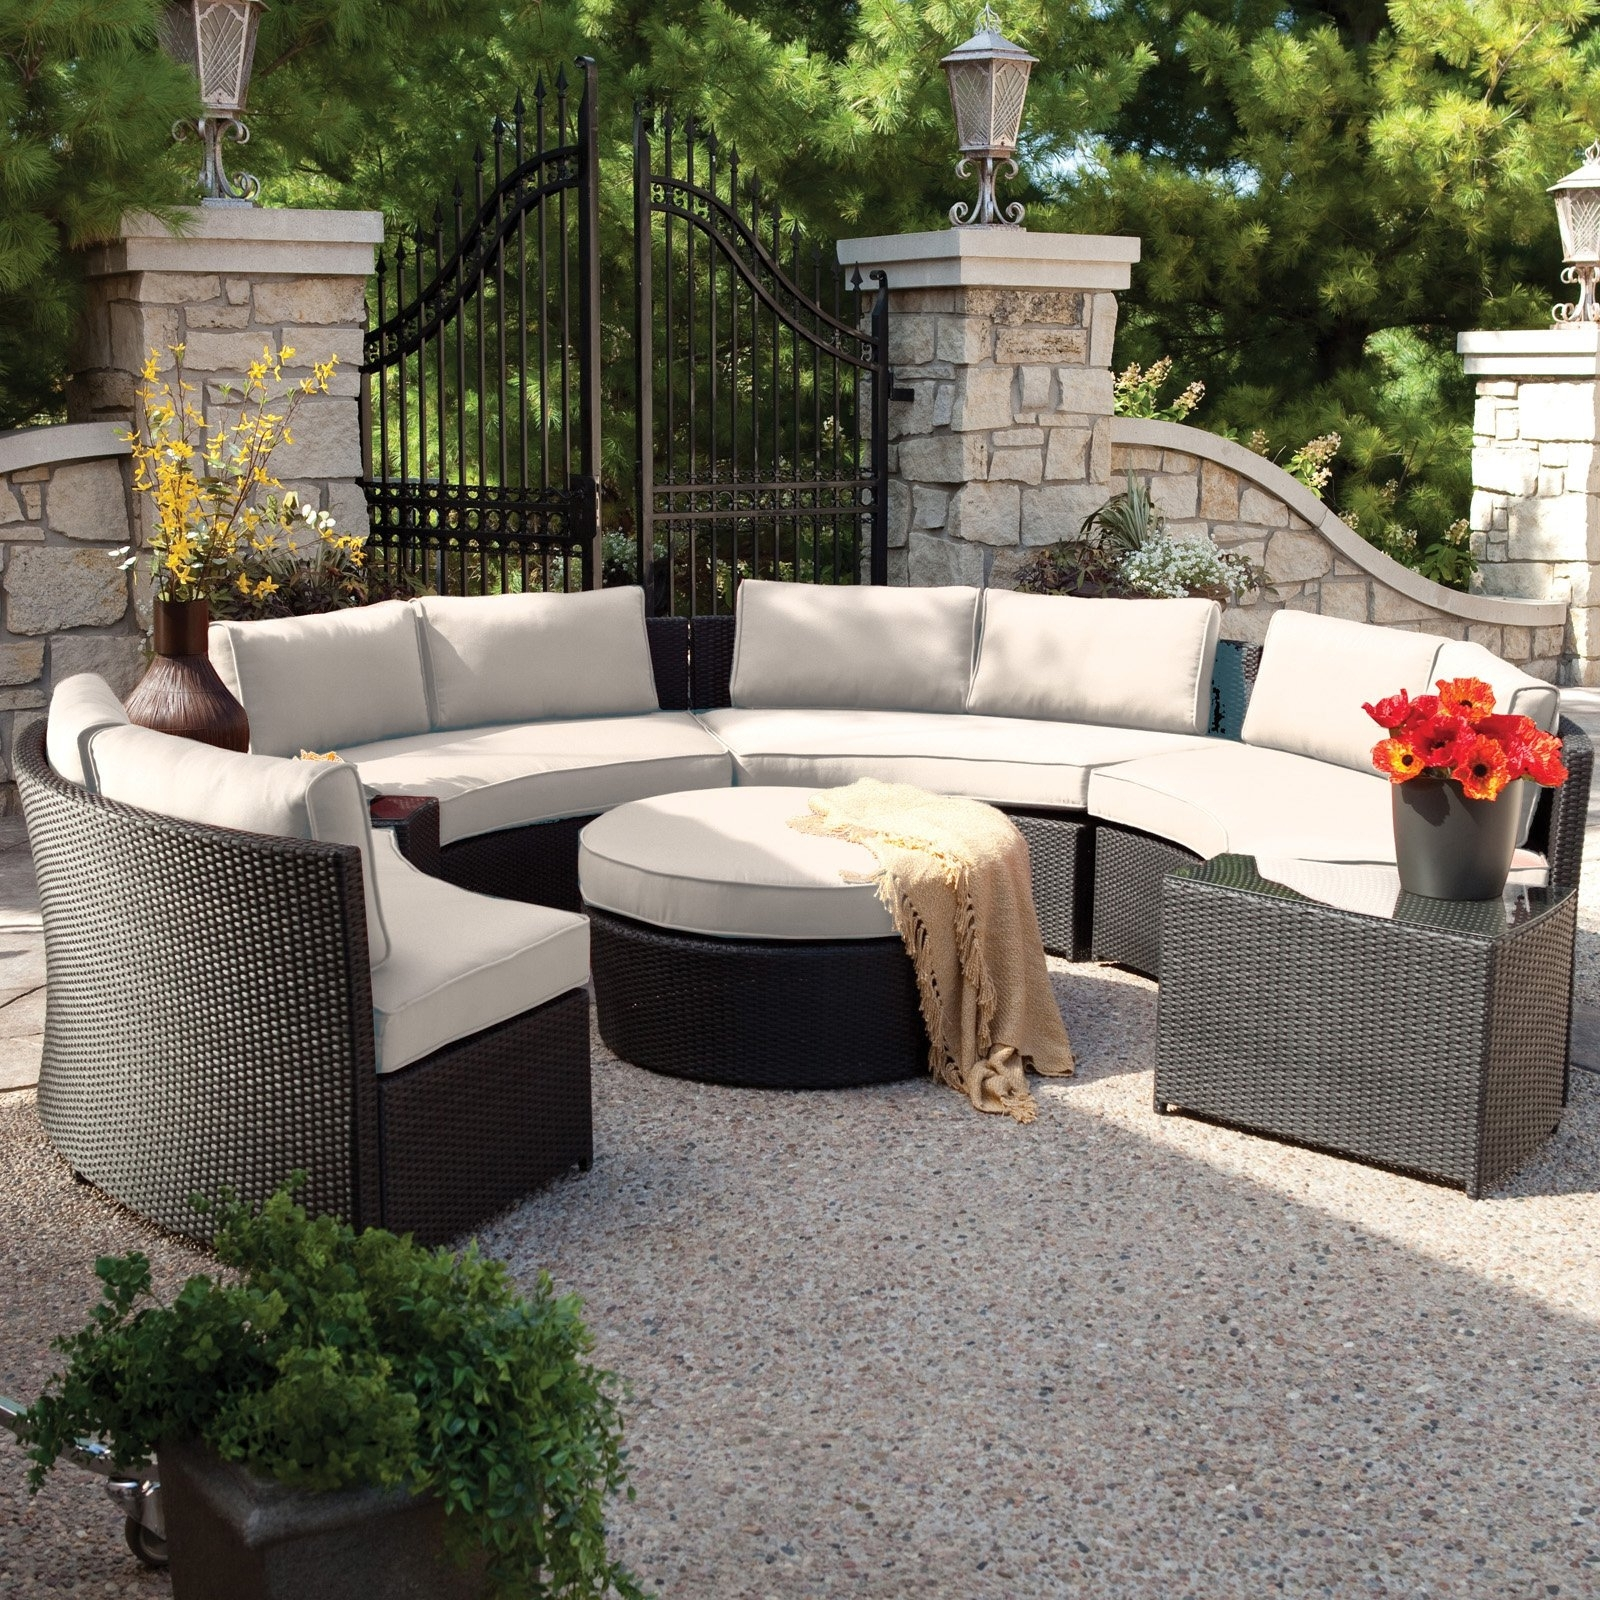 Pier One Outdoor Furniture (View 6 of 15)